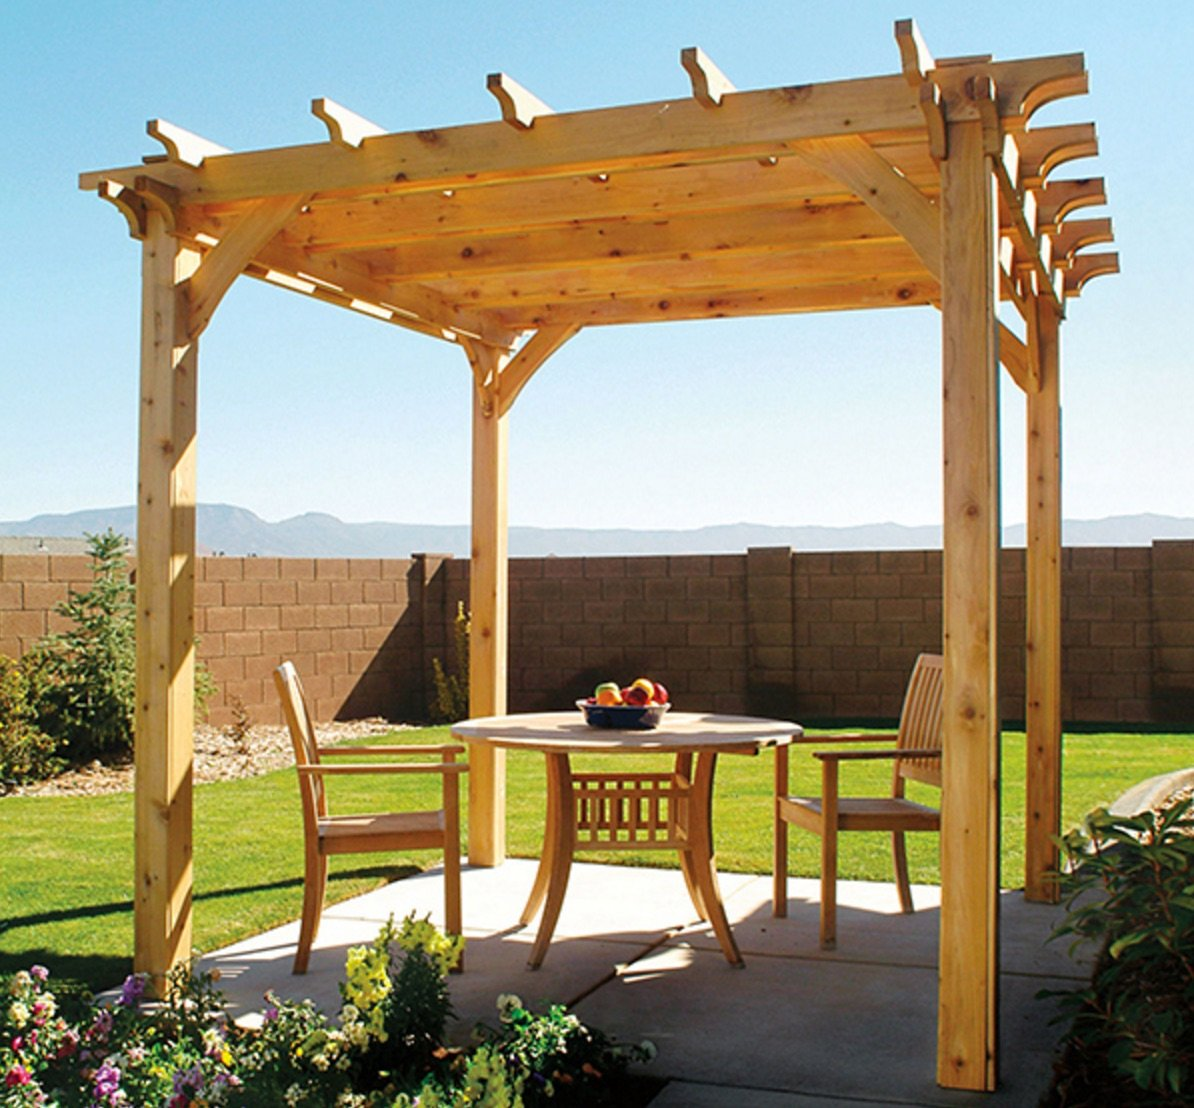 diy backyard pergola with free plan. Black Bedroom Furniture Sets. Home Design Ideas